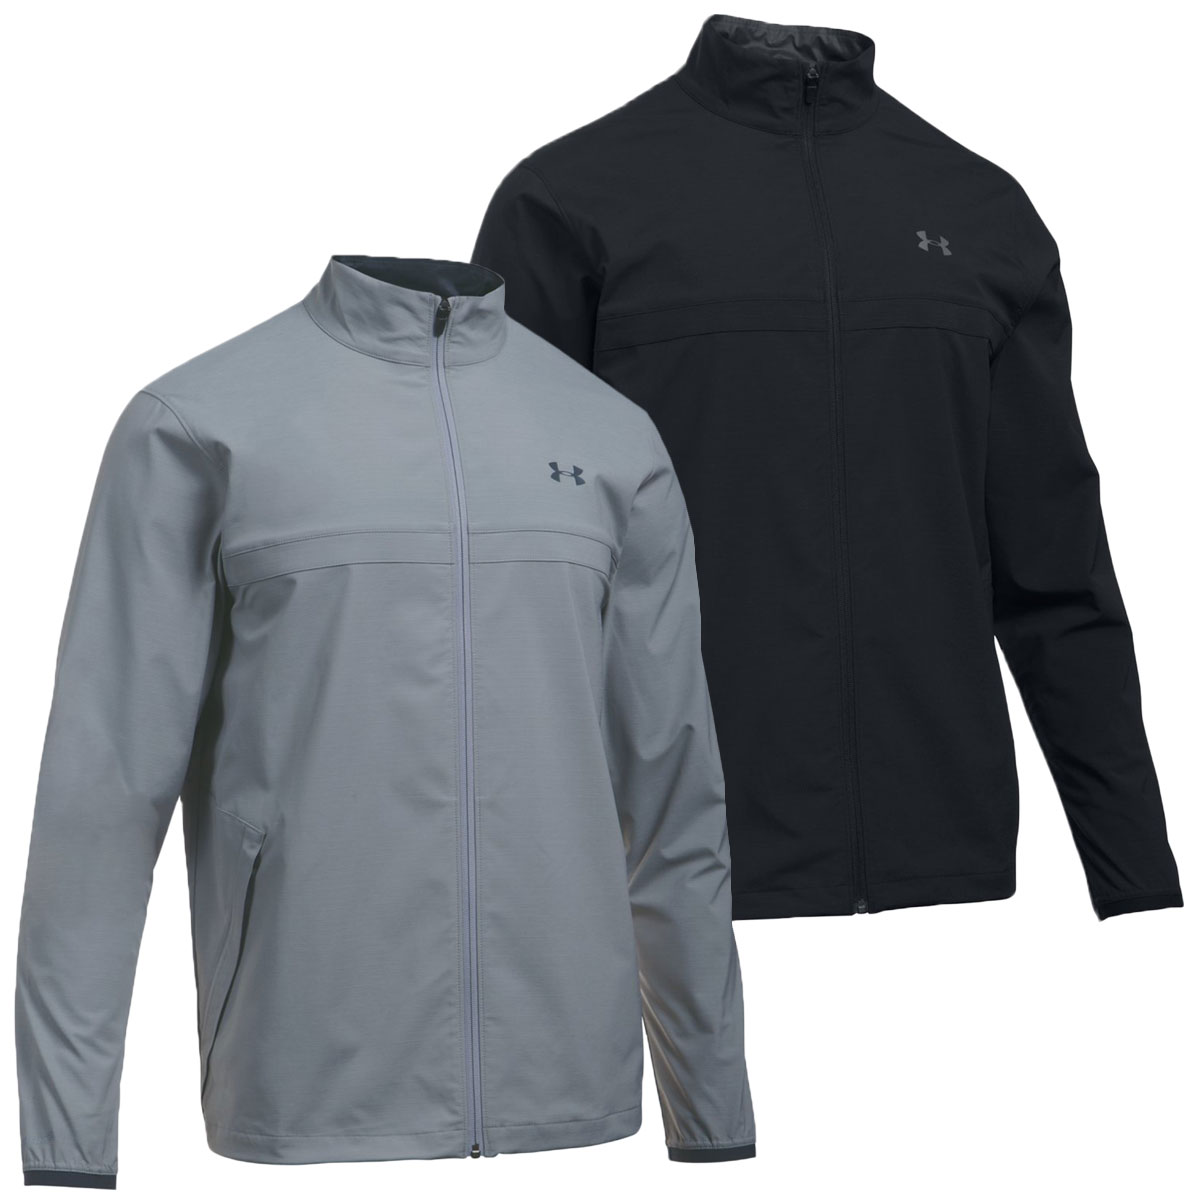 06bca7e5f0746f Details about Under Armour Mens UA Storm Windstrike Full Zip Performance  Golf Jacket